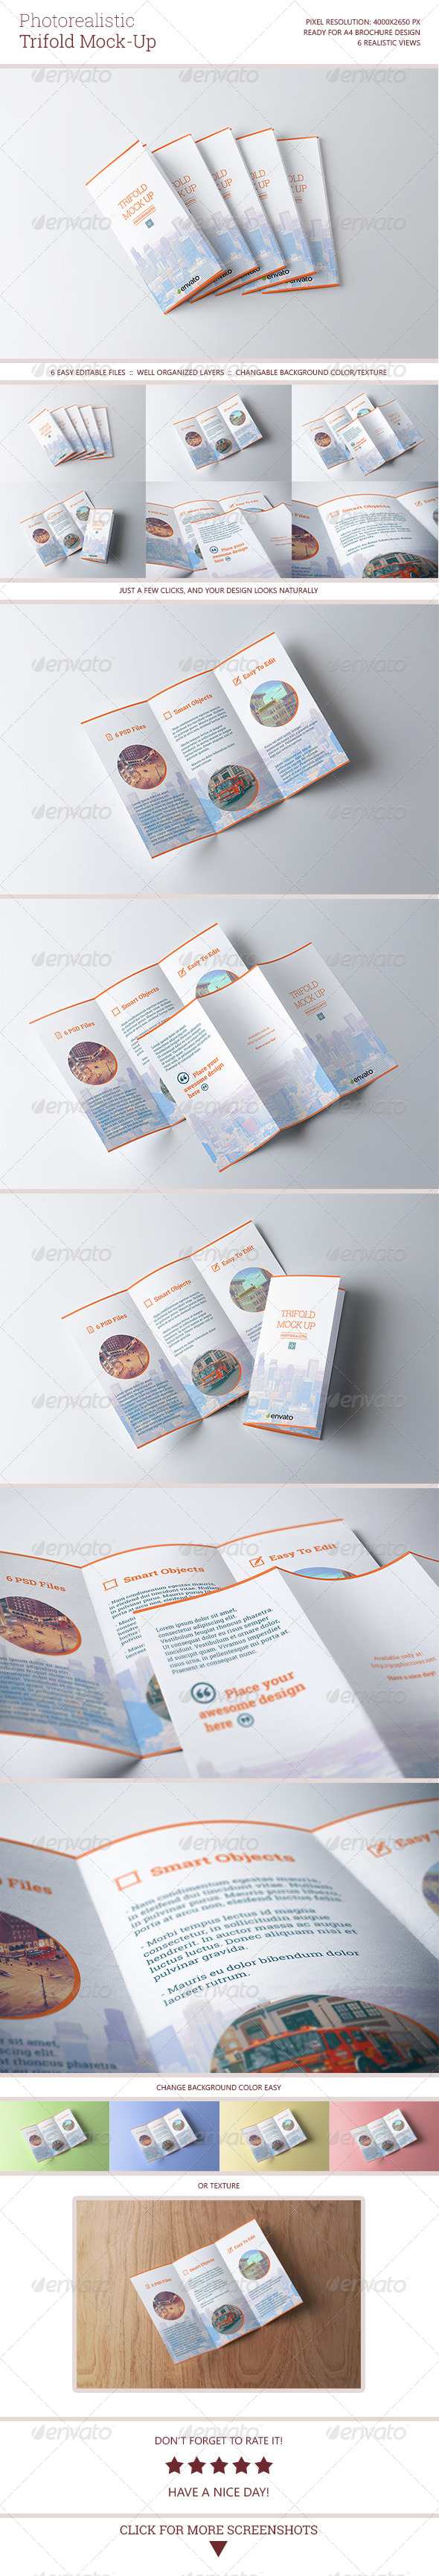 Photorealistic Trifold Mock-Up - Brochures Print